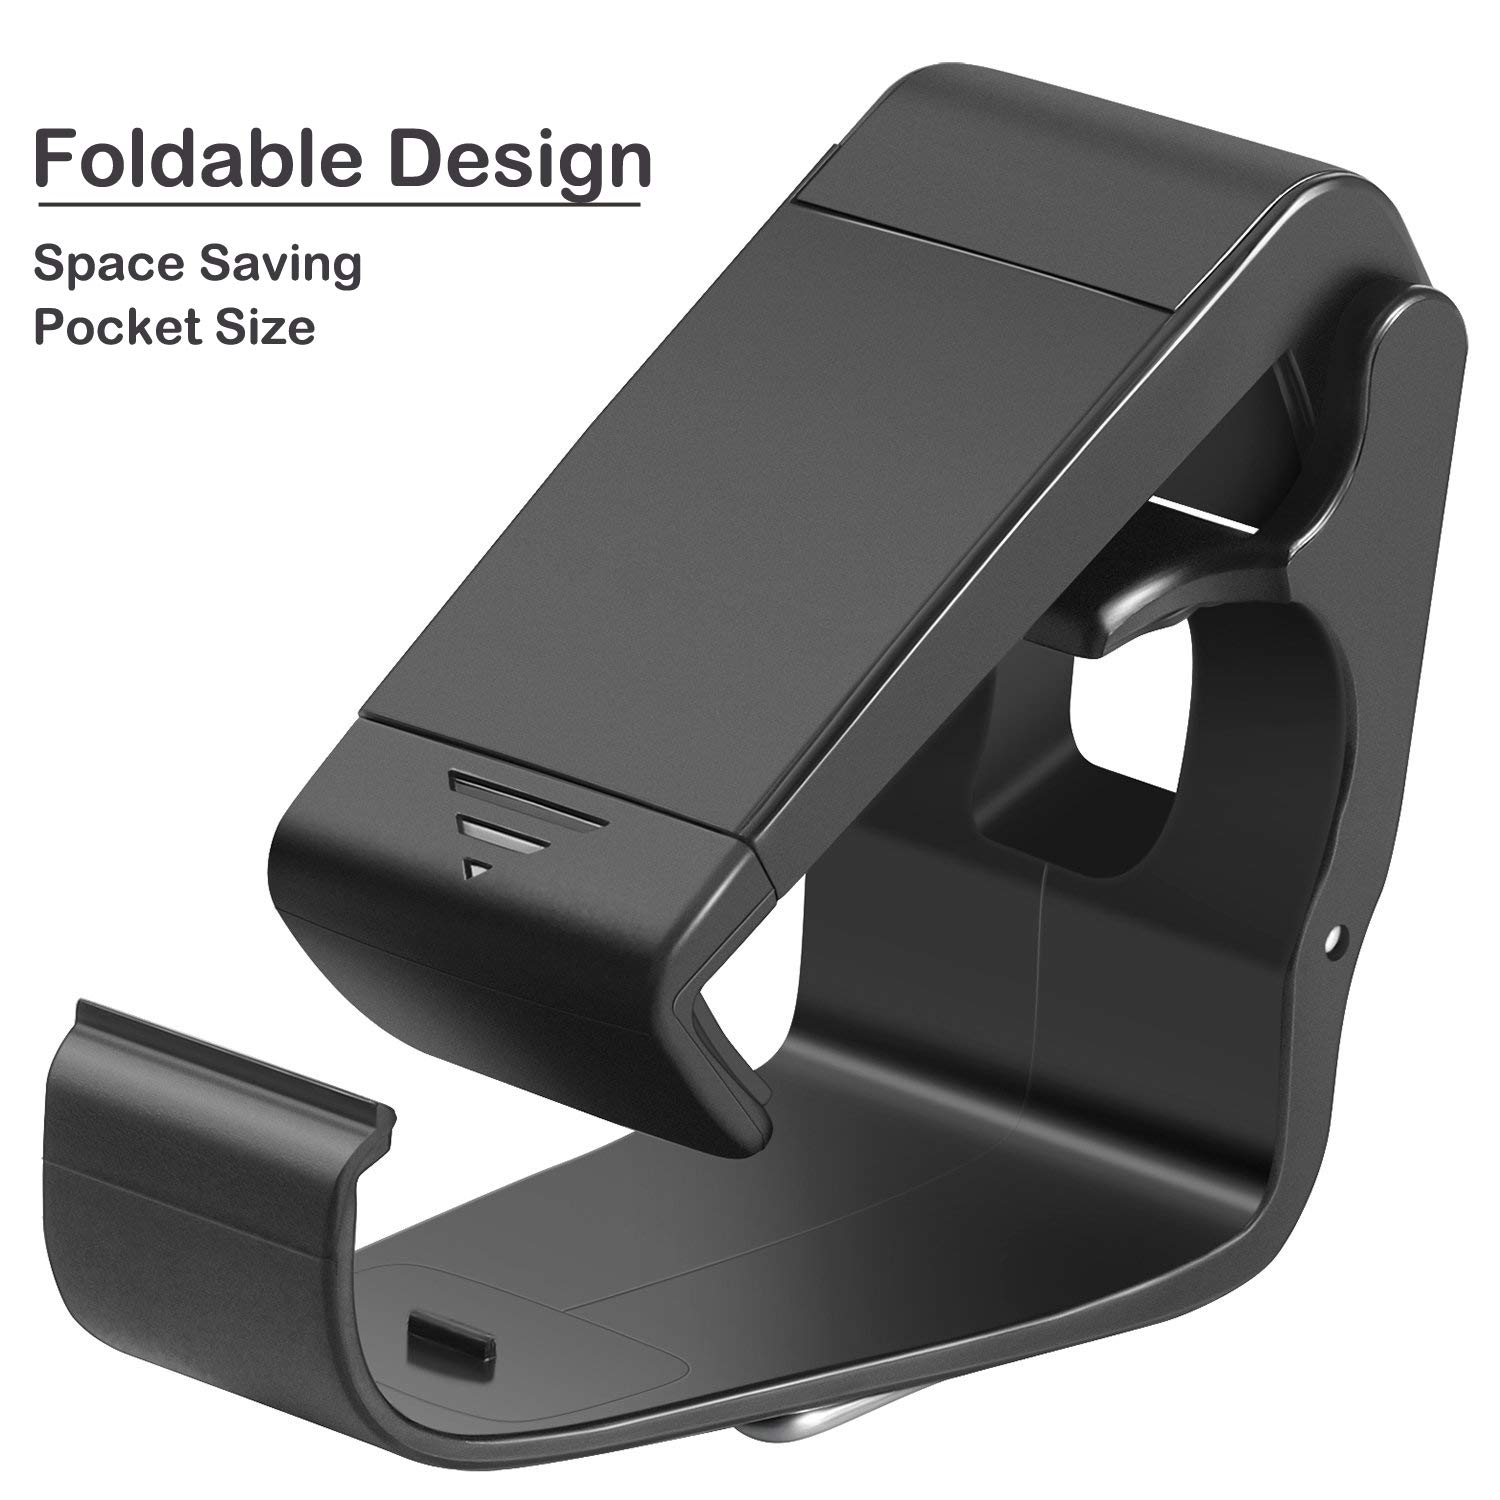 Megadream Foldable Mobile Phone Holder Cellphone Clamp Smartphone Clip Compatible with Microsoft Xbox One/Xbox One S/Xbox One X, SteelSeries Stratus XL/Nimbus, Steam Controllers, with Analog Stick Cap